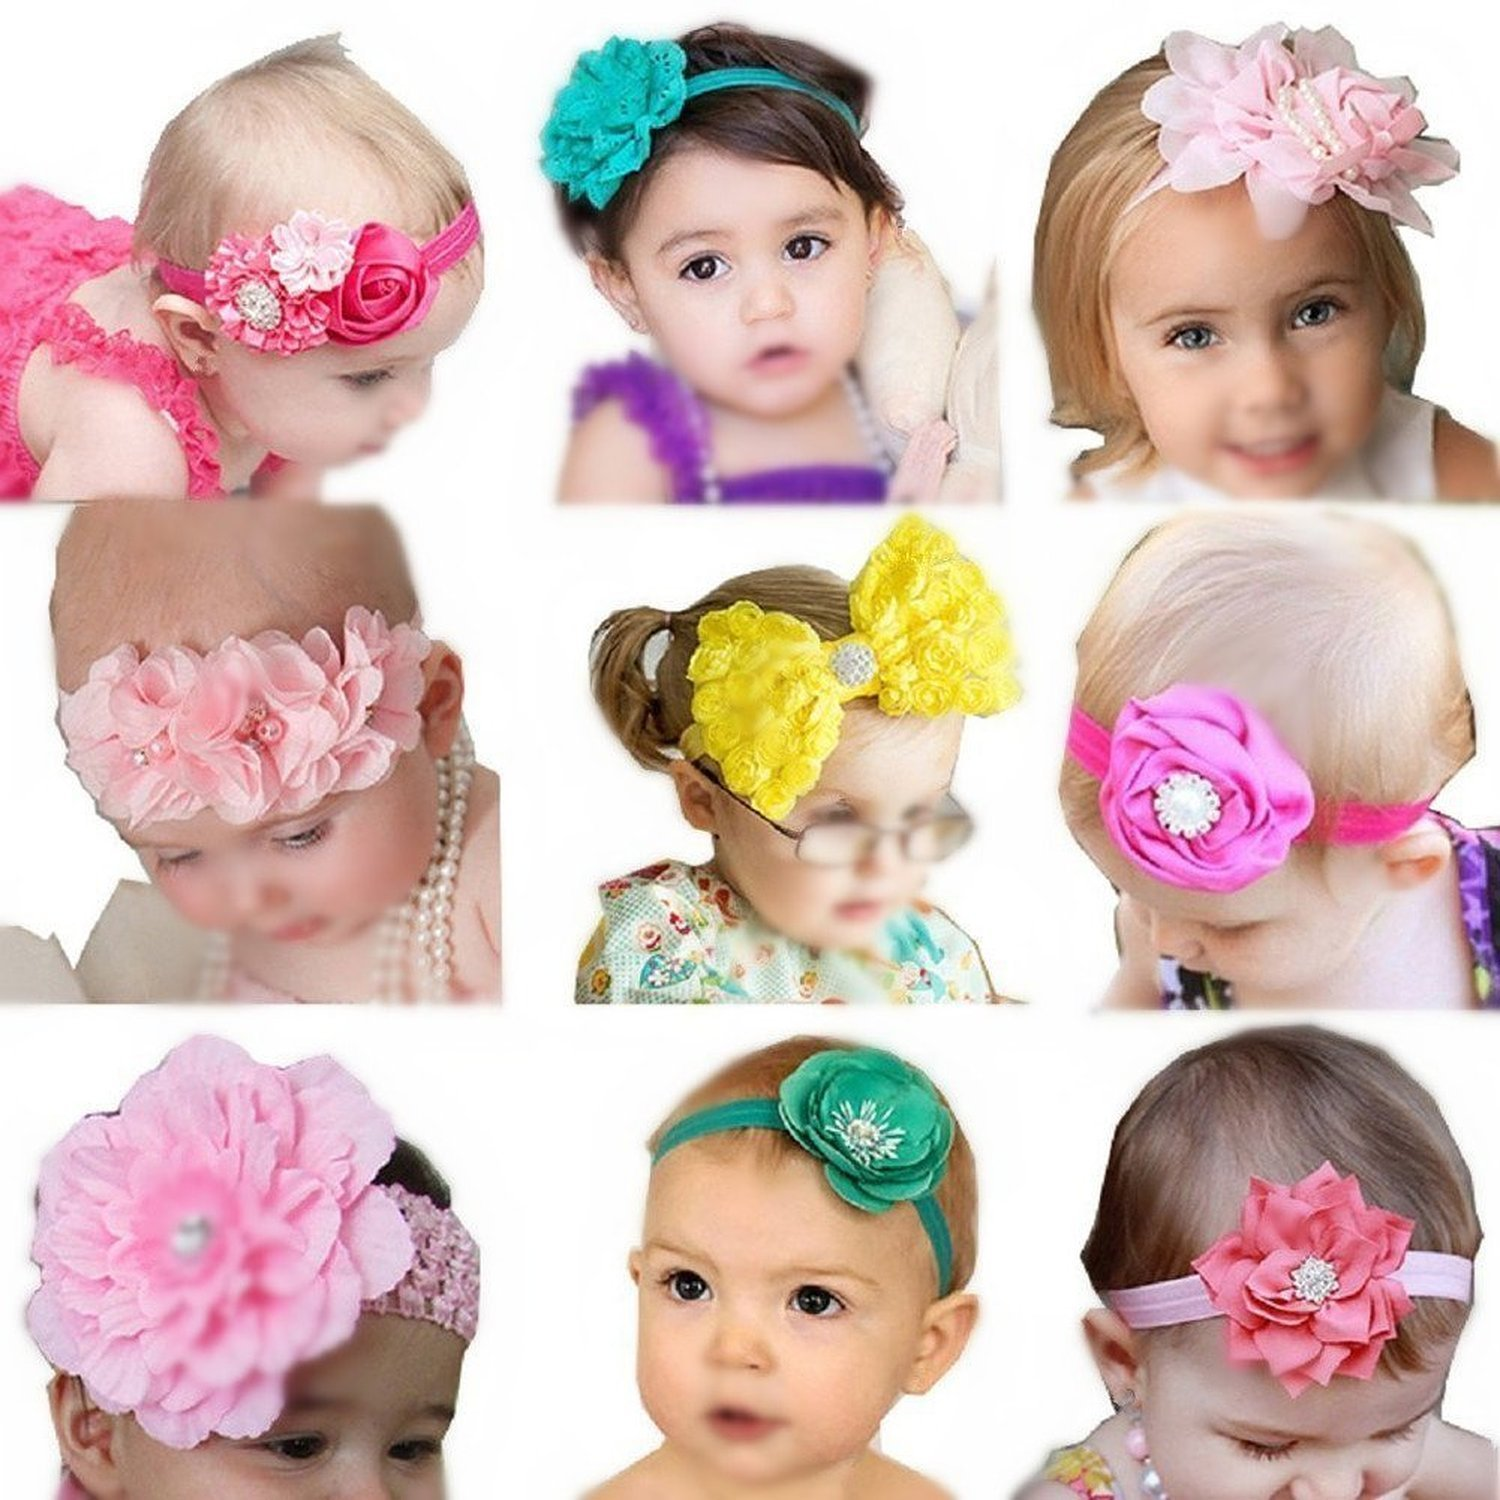 Qandsweet Baby Girl s Beautiful Headbands (9 Styles Bows)  Amazon.ca  Beauty bde6a3f0a7c1